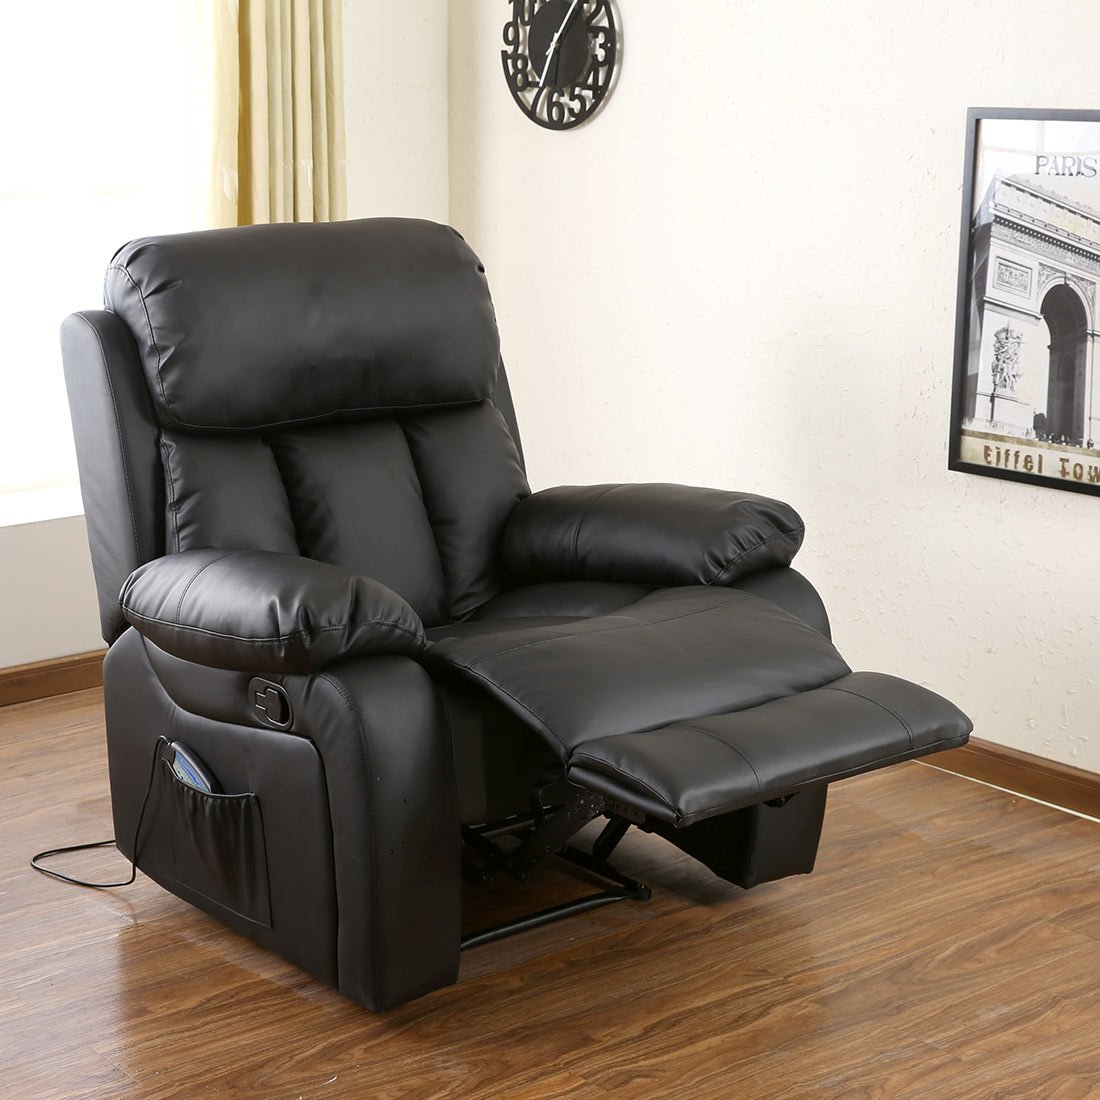 More4Homes (tm) CHESTER HEATED MASSAGE RECLINER BONDED LEATHER CHAIR SOFA  LOUNGE GAMING HOME ARMCHAIR (Black): Amazon.co.uk: Kitchen U0026 Home